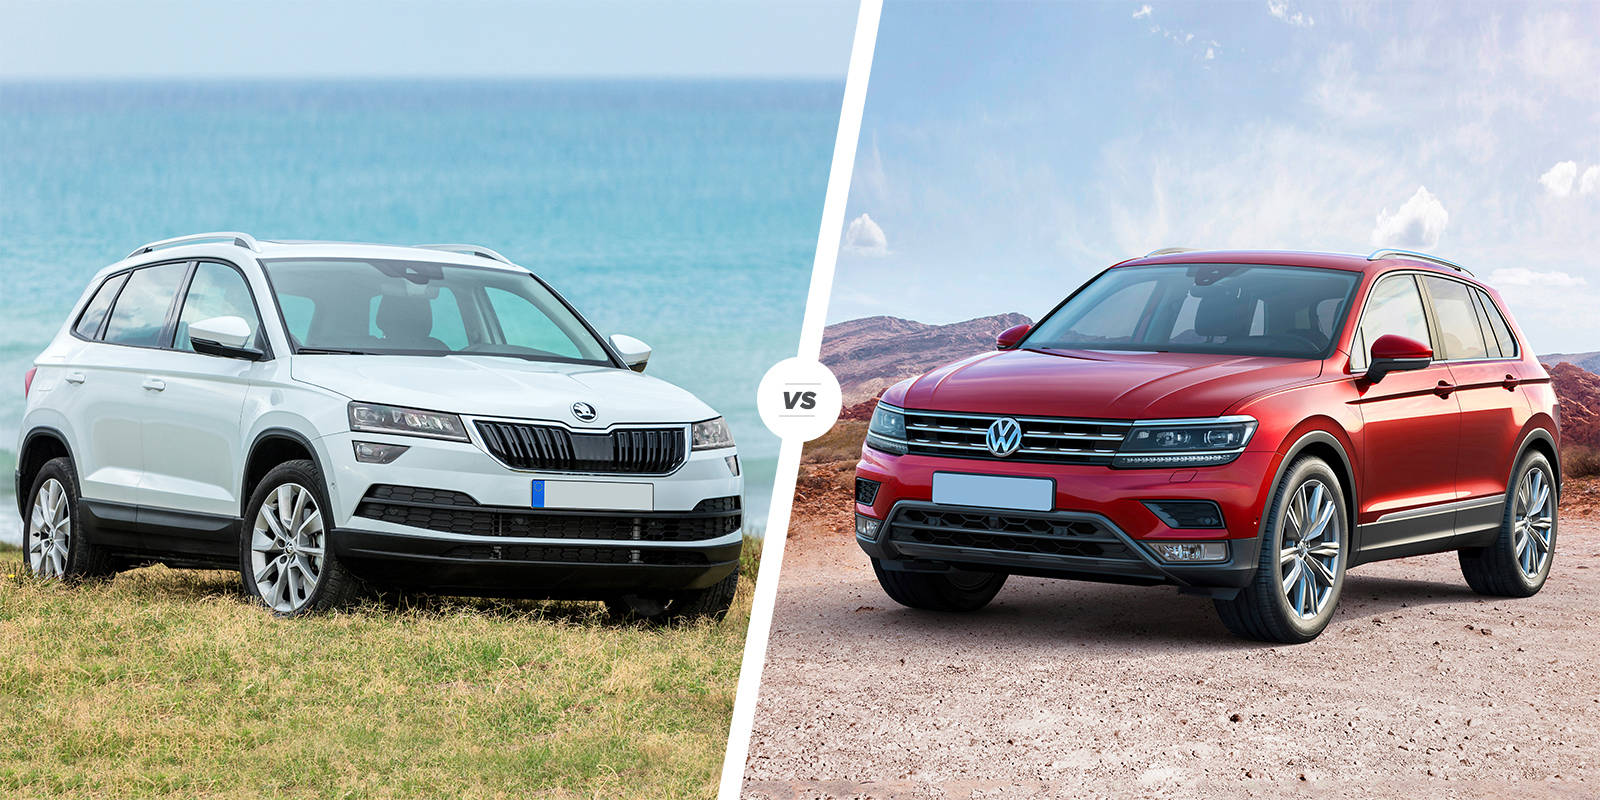 Skoda Karoq vs VW Tiguan – which is best